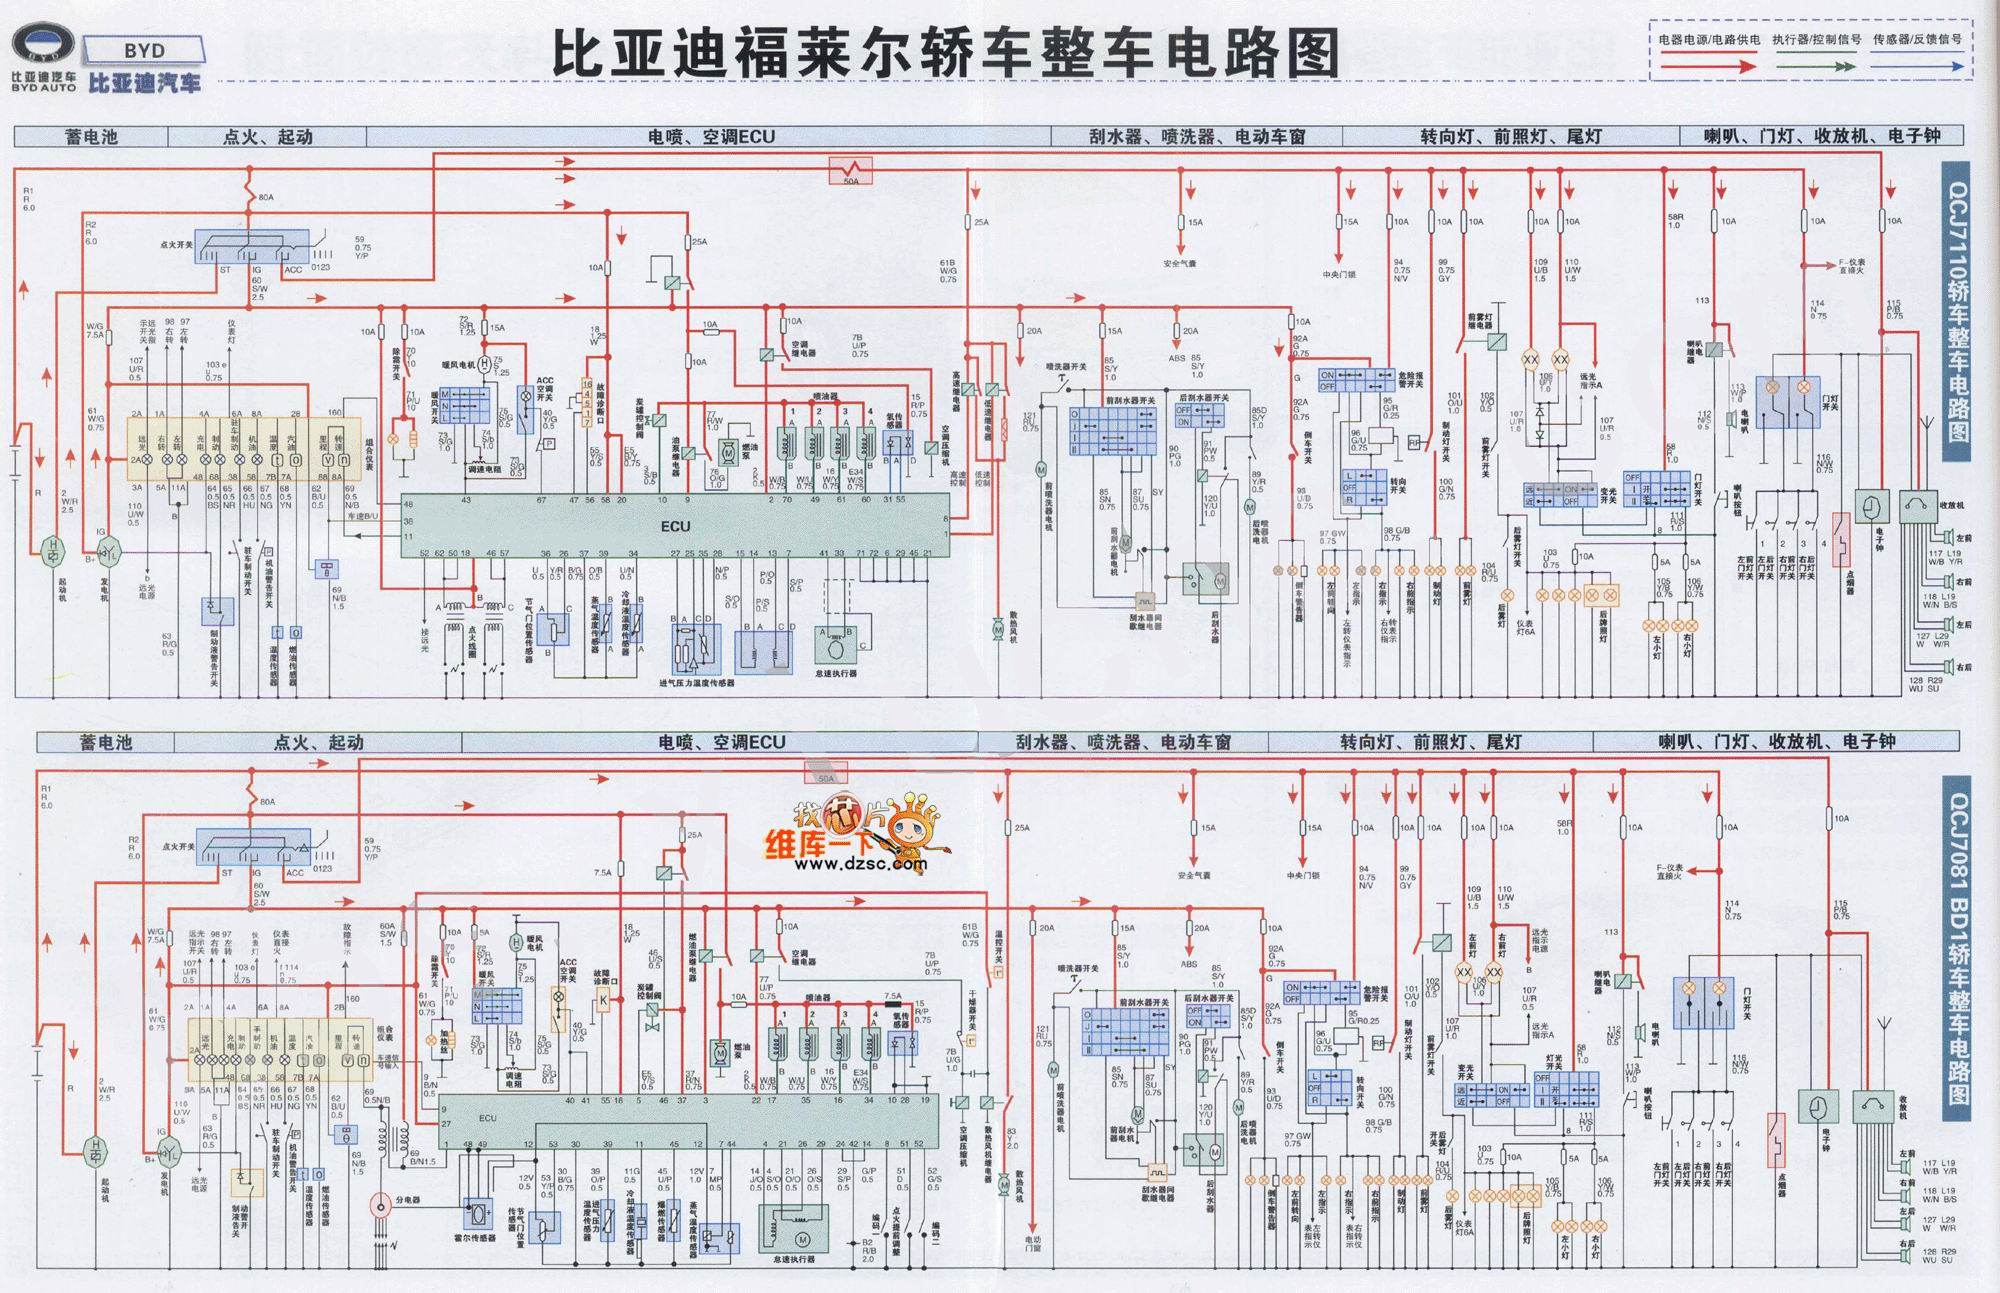 Byd Flyer Vehicle Circuit Diagram Automotive Shuntpindioderfswitch Basiccircuit Seekic